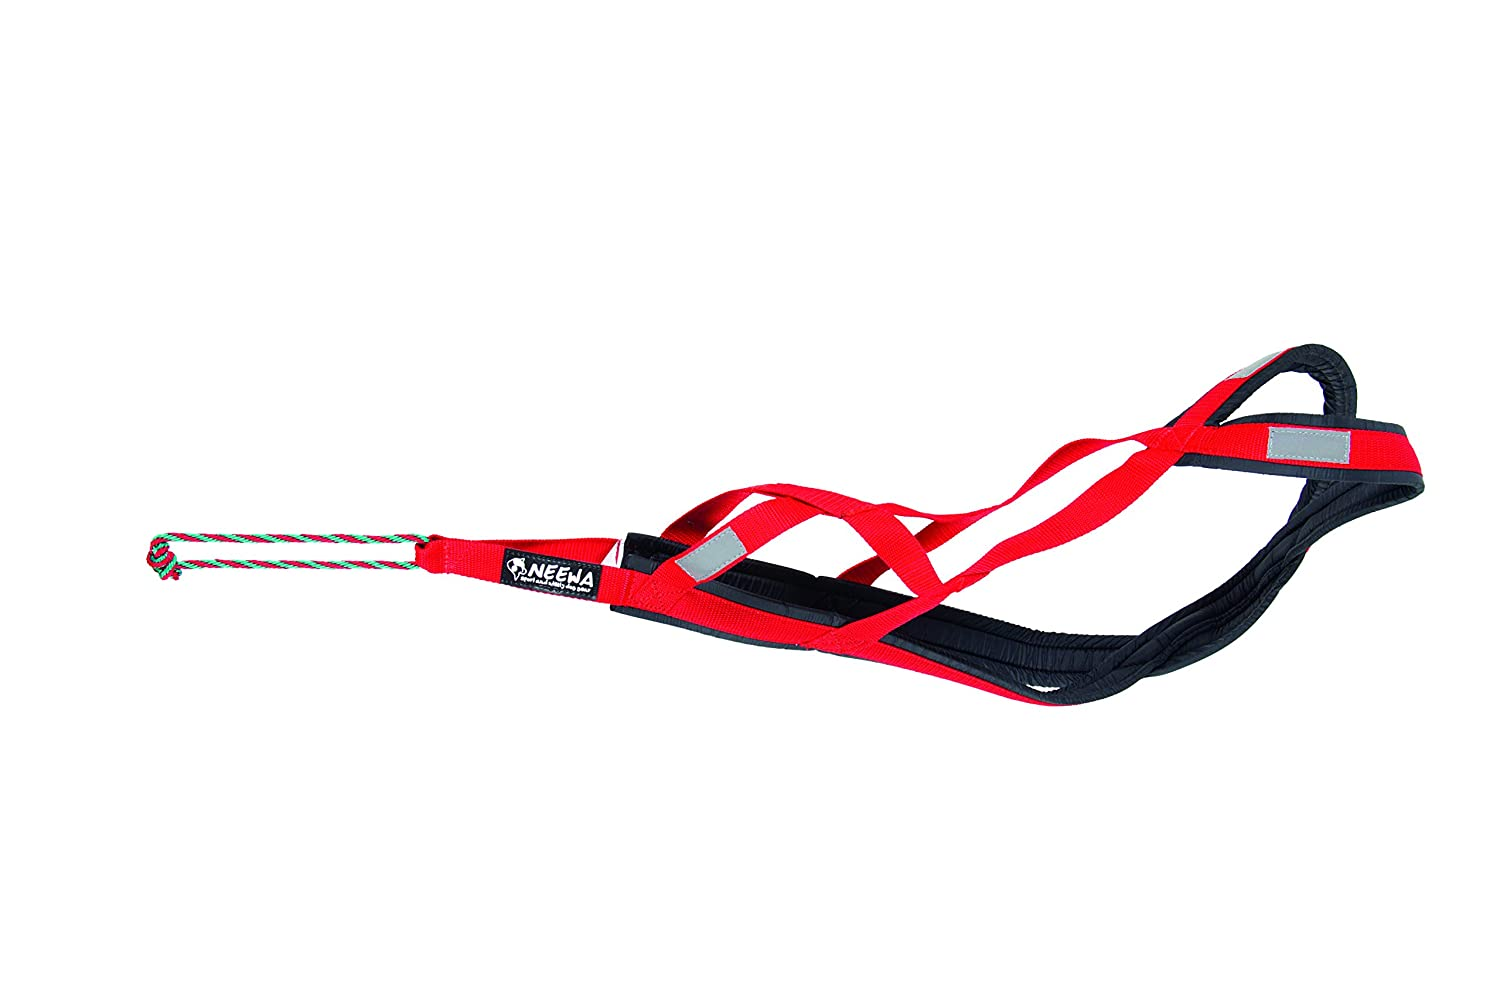 Neewa 8033087538809 - Sled Pro arnés Rojo XL: Amazon.es: Productos ...